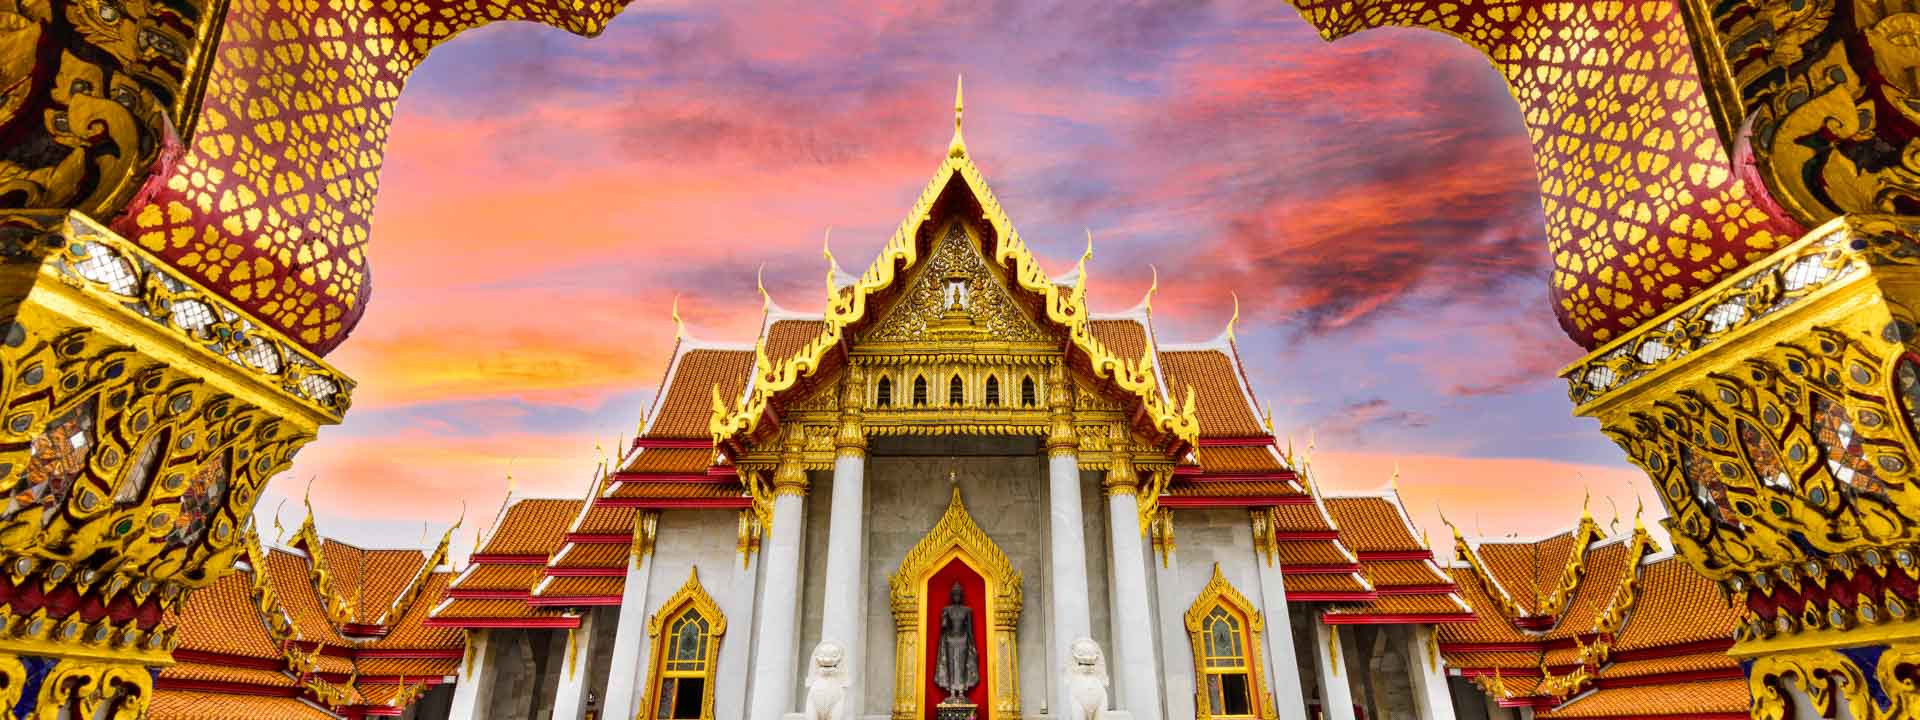 Discover the best of Cambodia Vietnam Thailand Tour 15 days